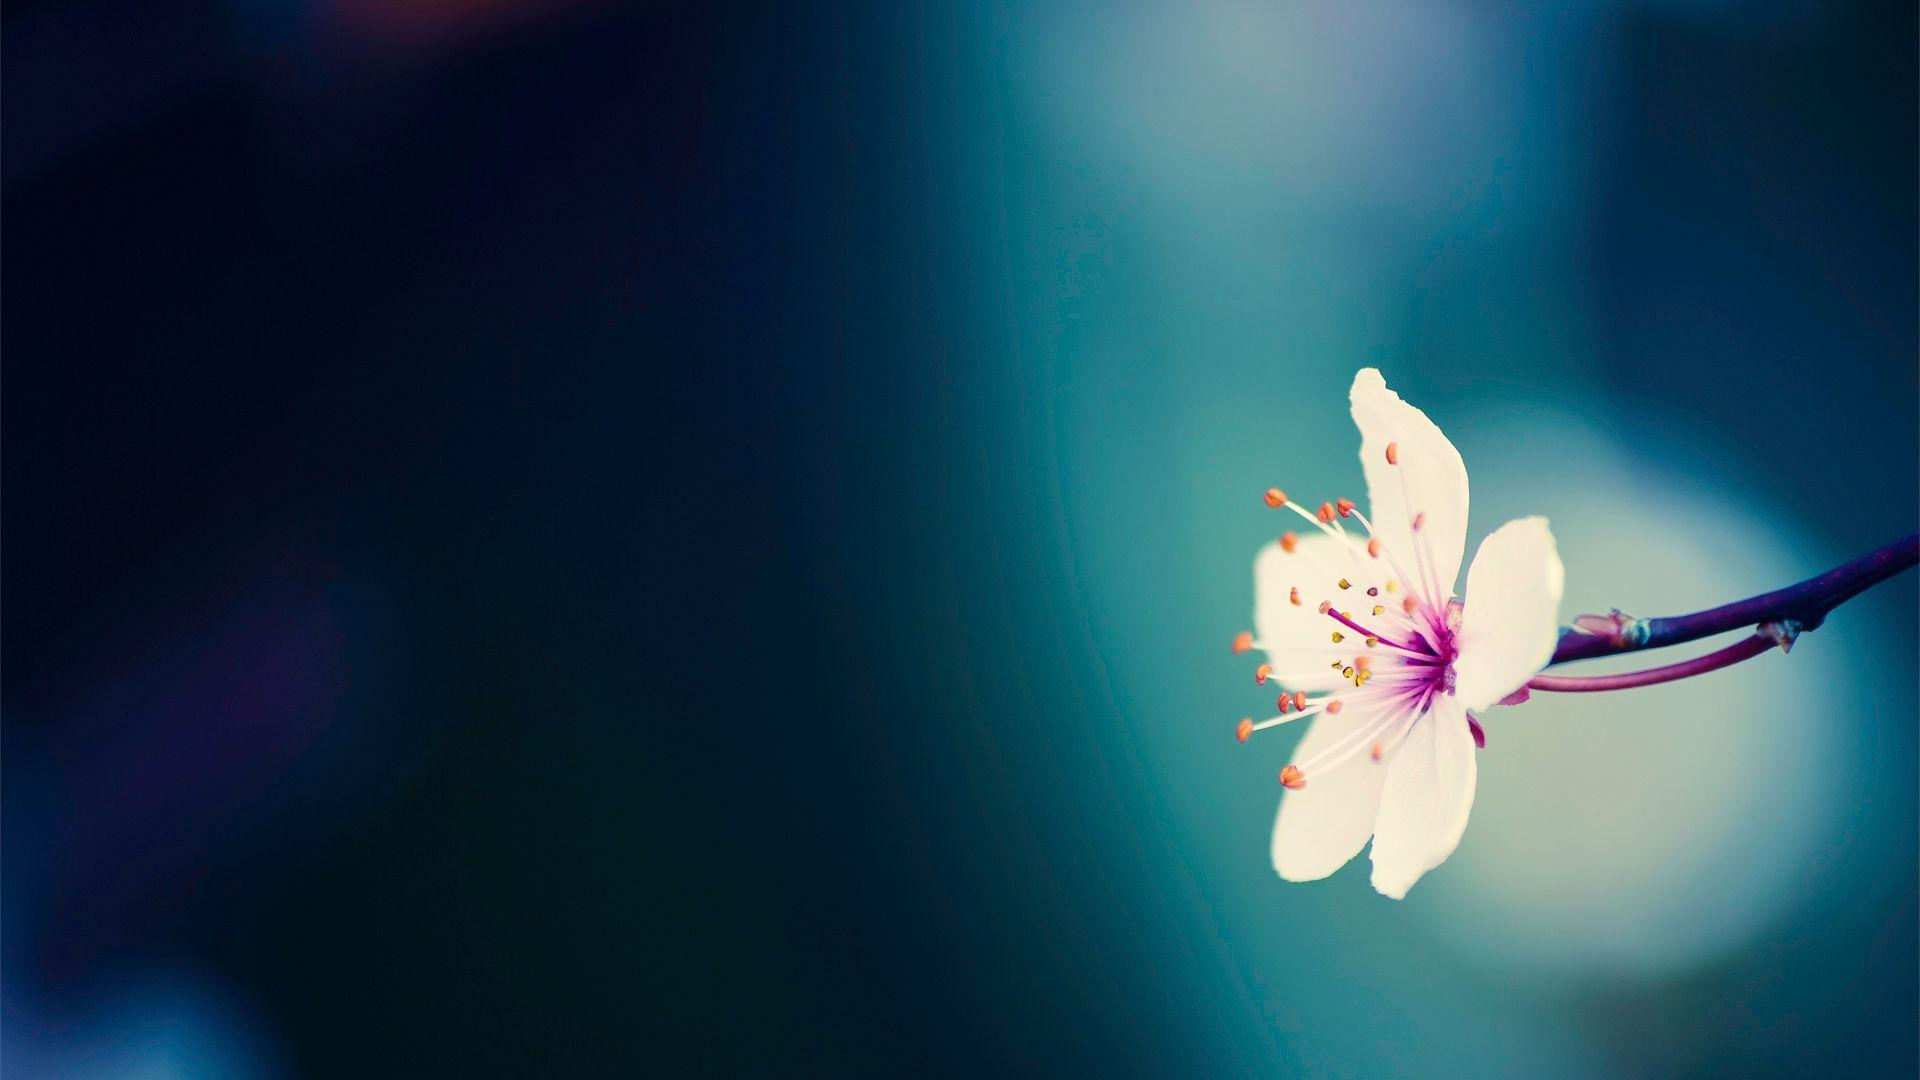 spring flowers background you - photo #26